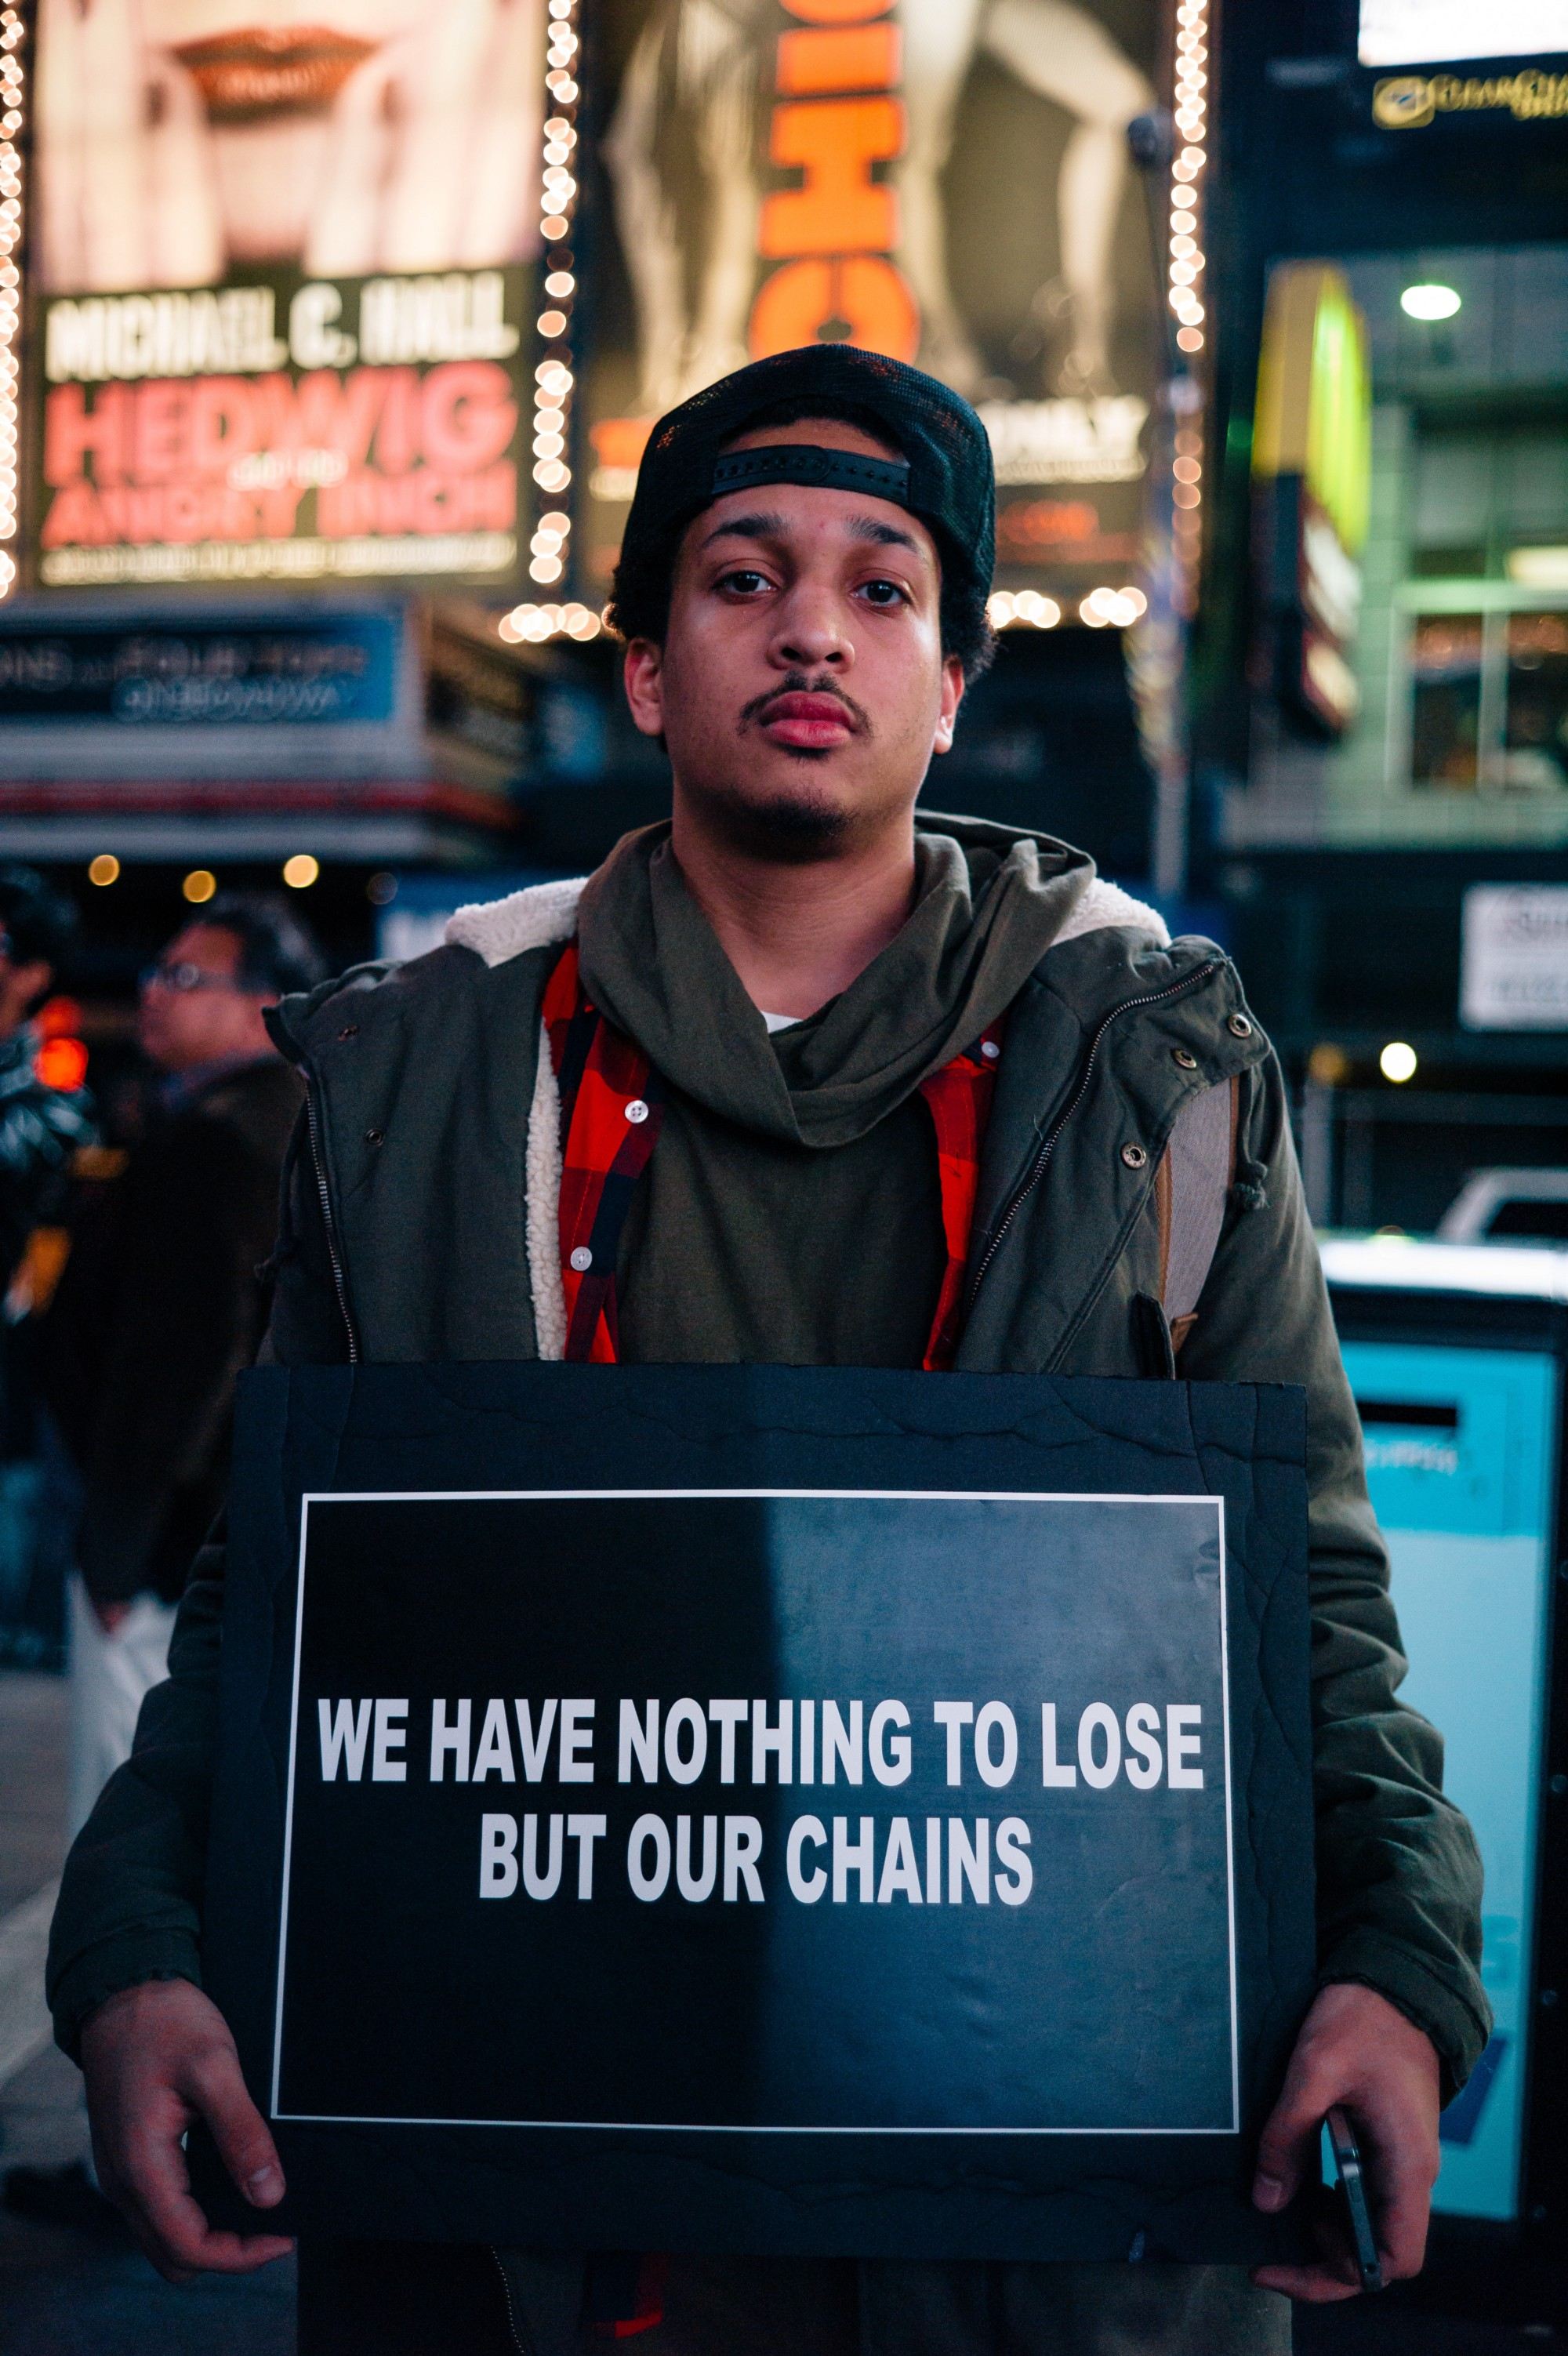 police brutality black lives matter essay Protesters marched again saturday in cities across the nation to decry police brutality after the killing of two african-american men by police this week.